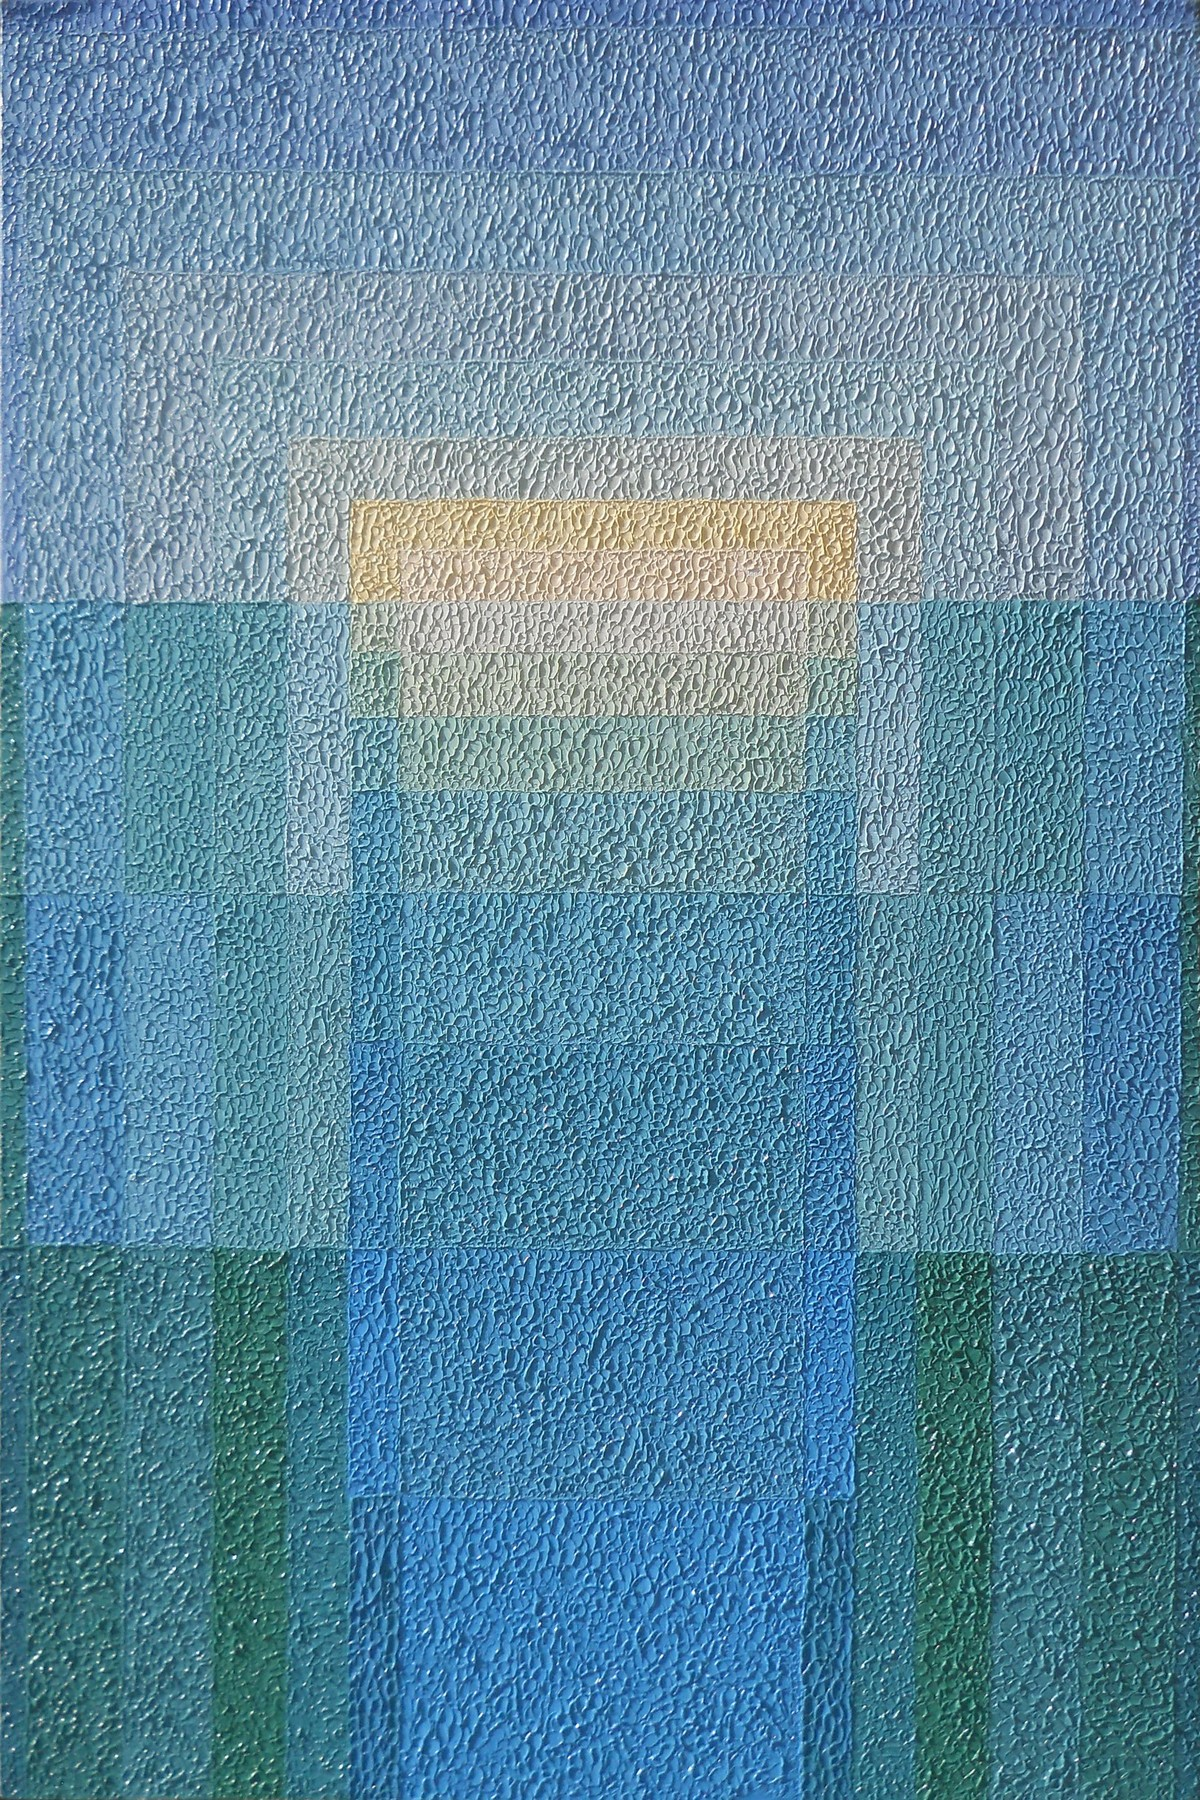 REFLECTION by S.P.Verma, Abstract Painting, Oil on Canvas Board, Blue color